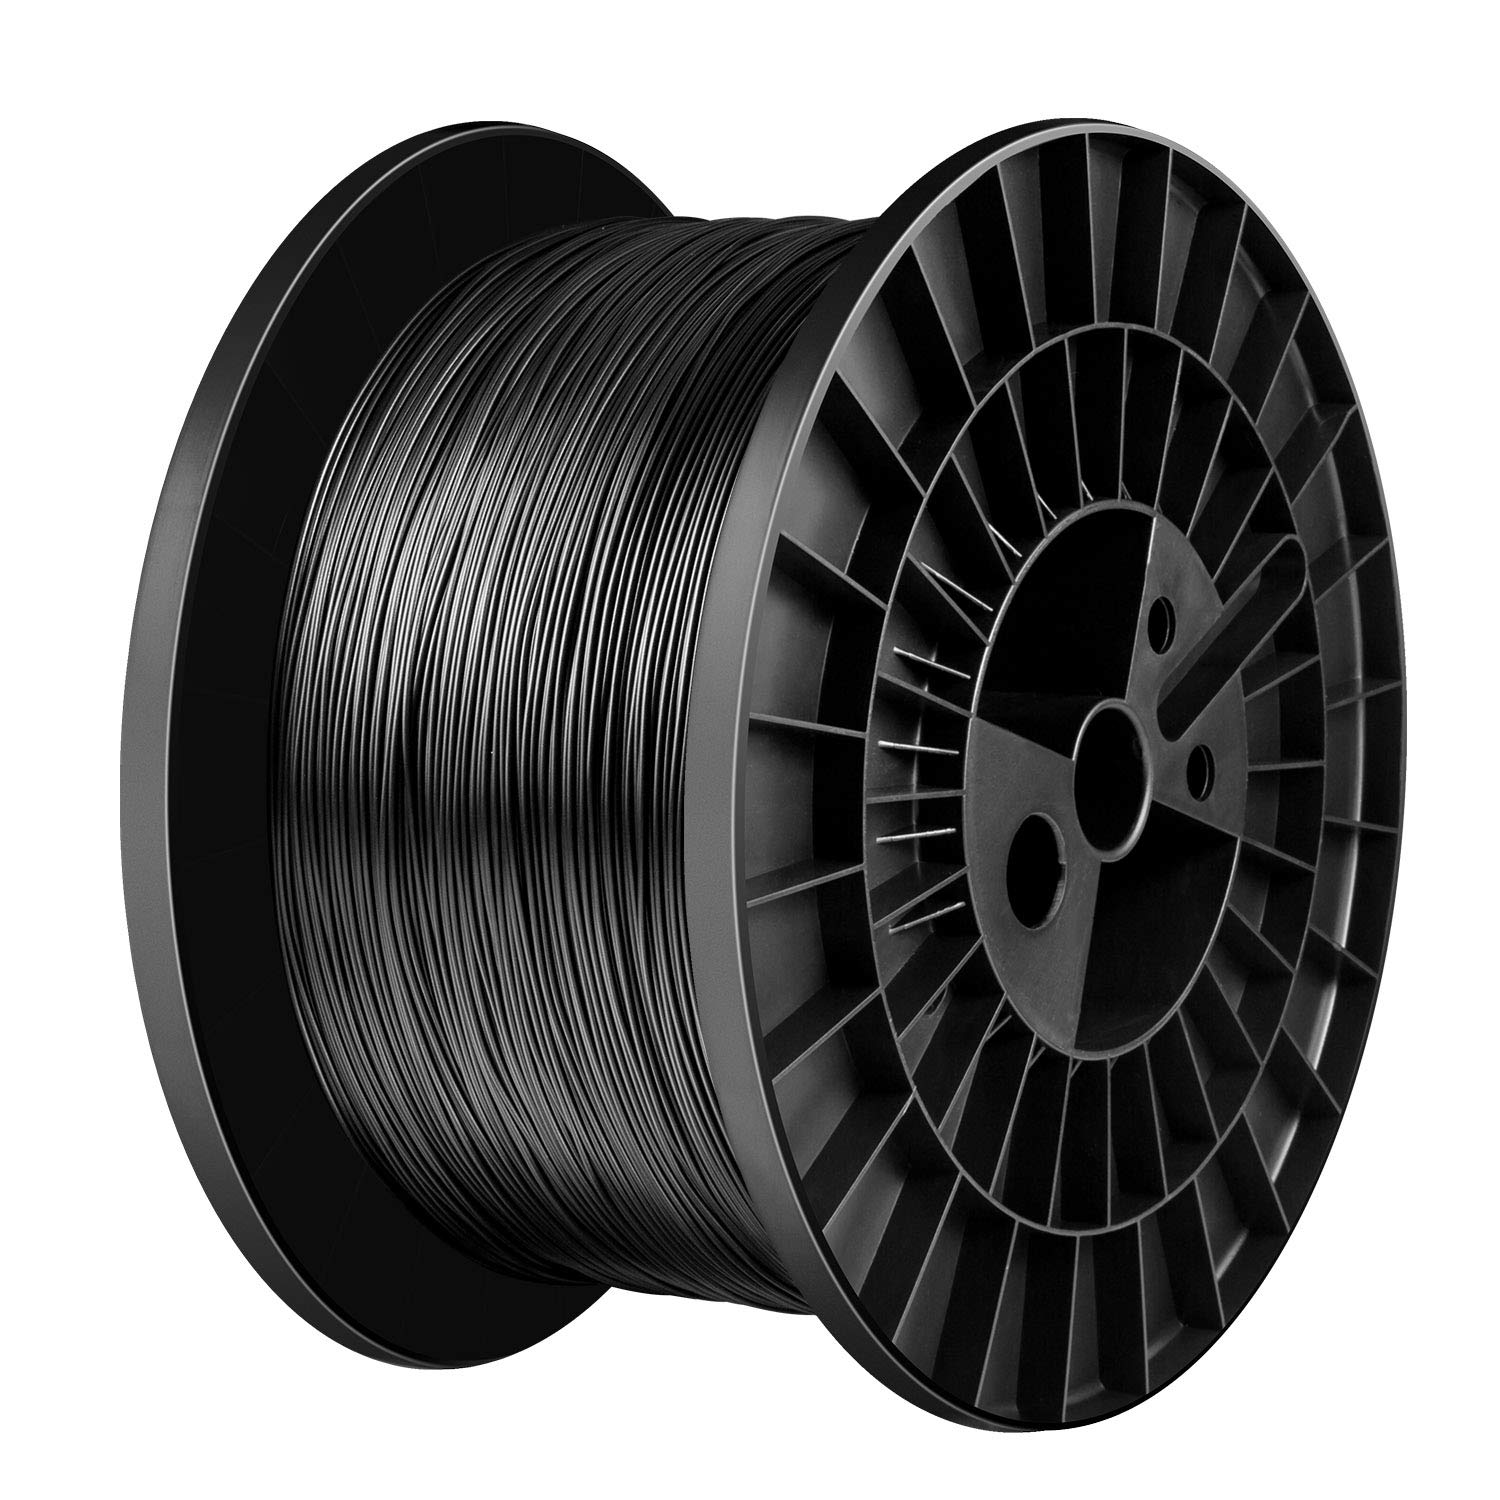 Tianse 3D Printer pla Filament 1.75mm 0 - Dimensional Accuracy Spring new work one Mesa Mall after another +